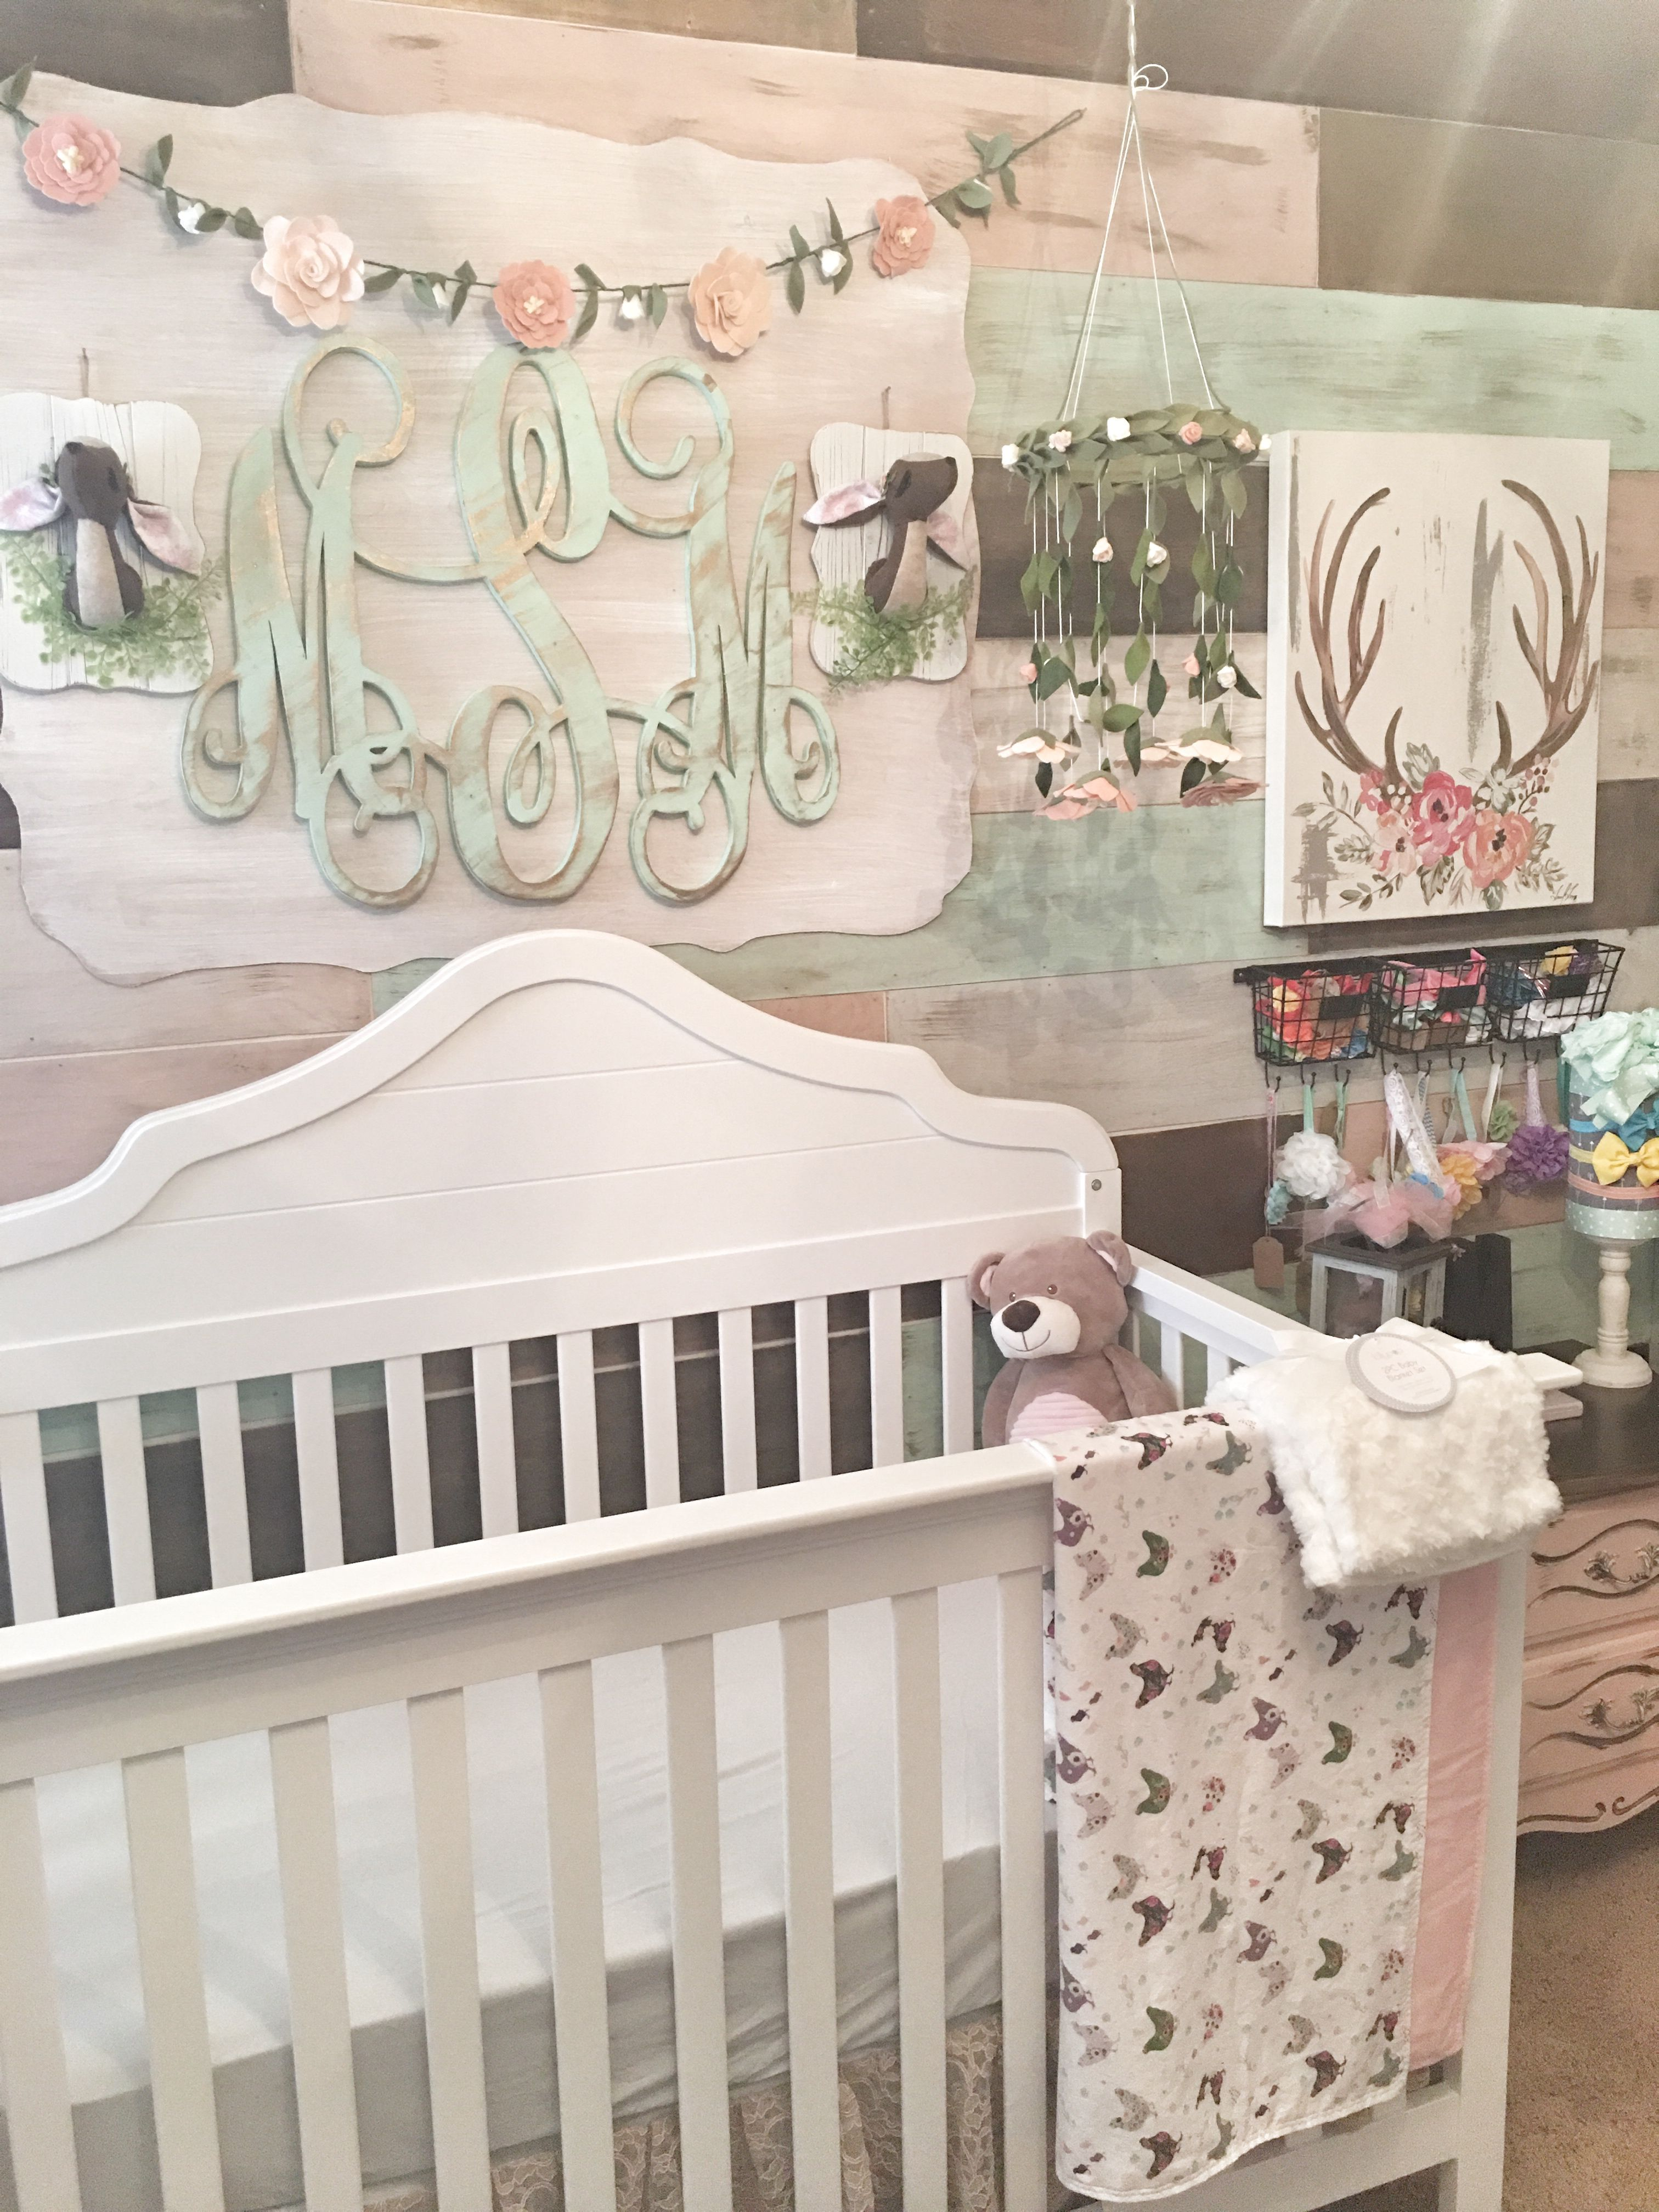 Glam Baby Girl Bedroom Ideas: Rustic Glam Pallet Wall By The Rustic Apple. Baby Girl